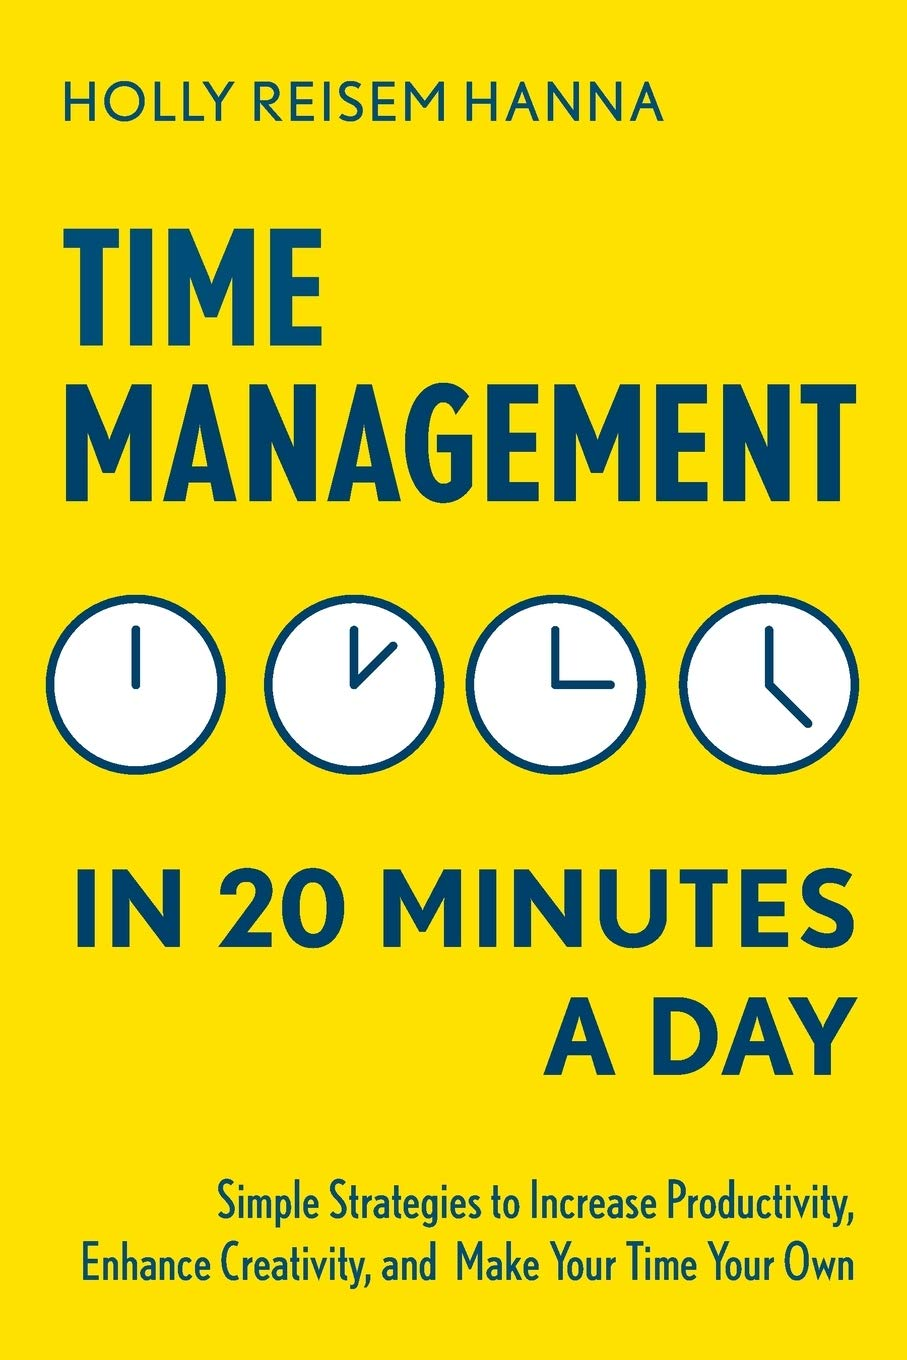 Amazon Com Time Management In 20 Minutes A Day Simple Strategies To Increase Productivity Enhance Creativity And Make Your Time Your Own 9781641520355 Reisem Hanna Holly Books